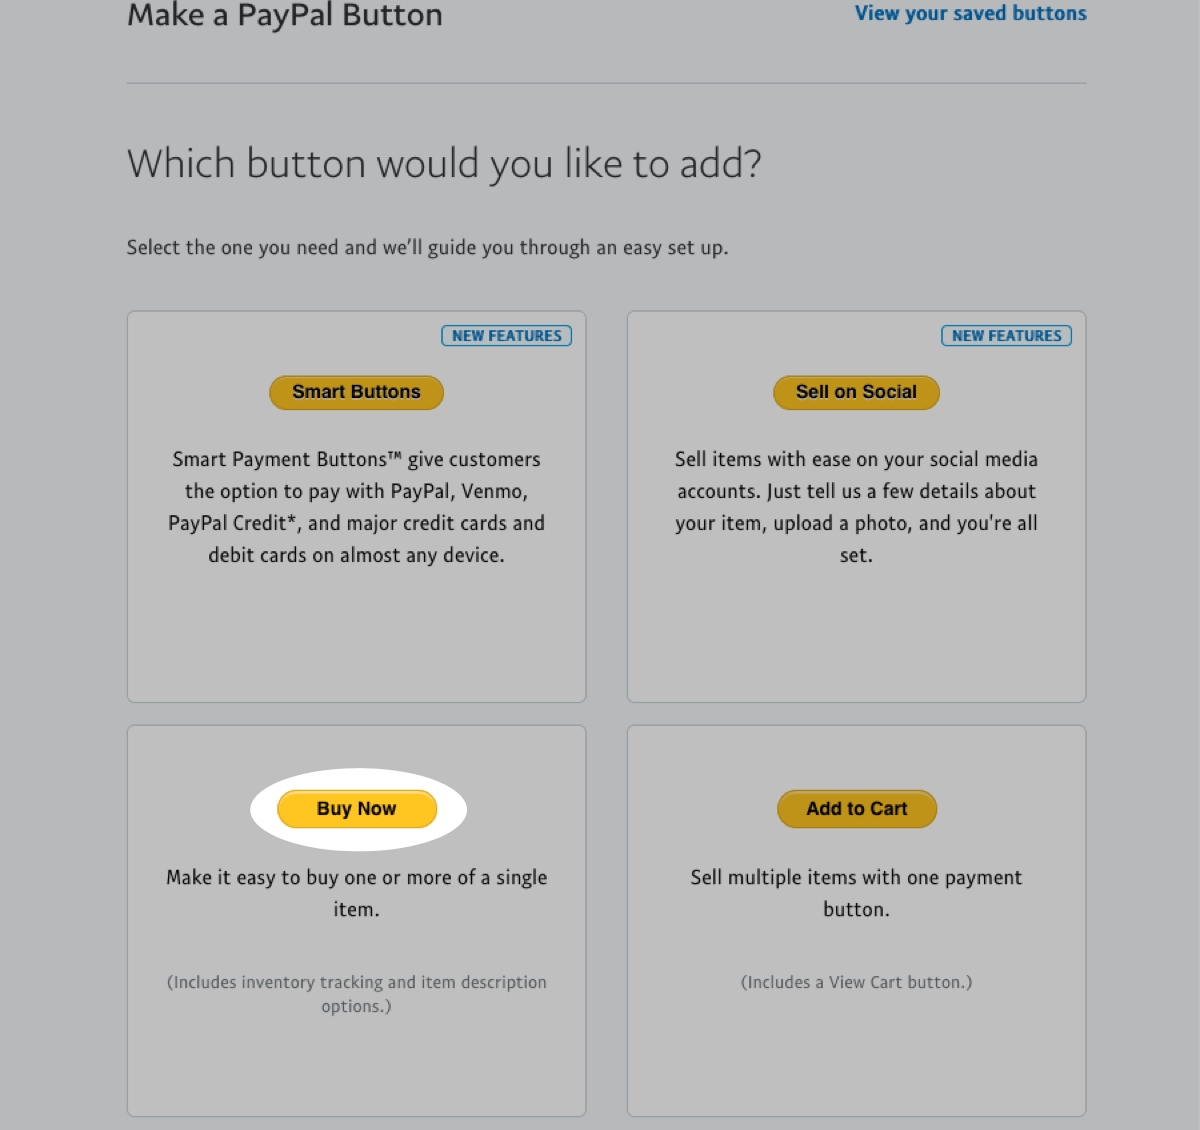 204031646_select_PayPal_button_type.png